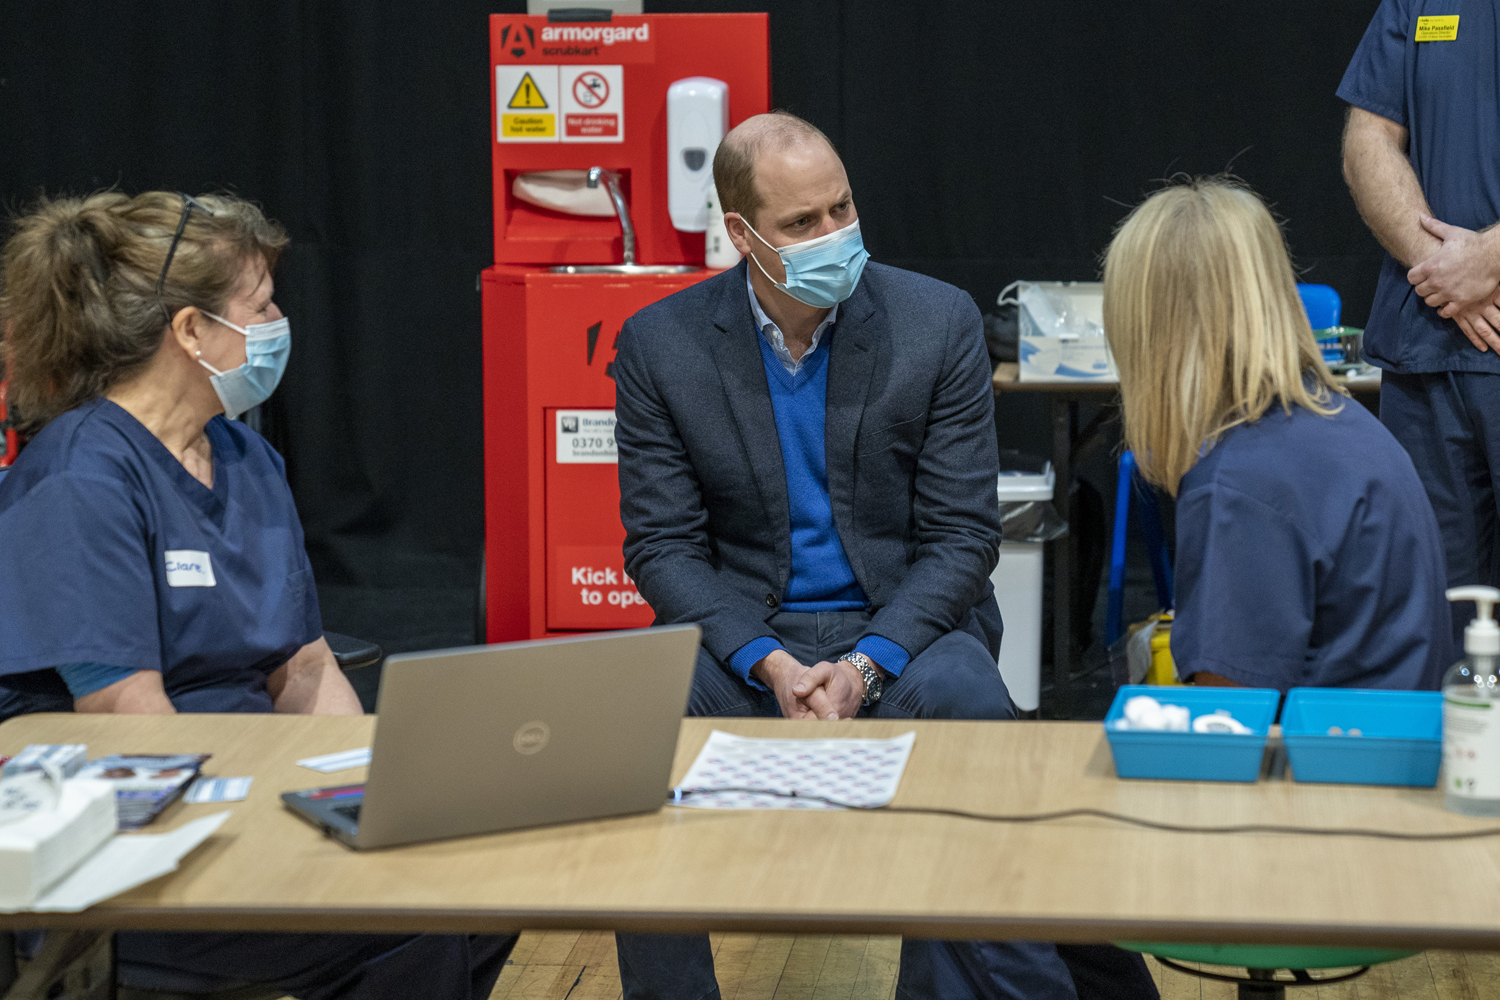 The Duke of Cambridge speaks to a member of the vaccination team during his visit to the King's Lynn Corn Exchange Vaccination Centre